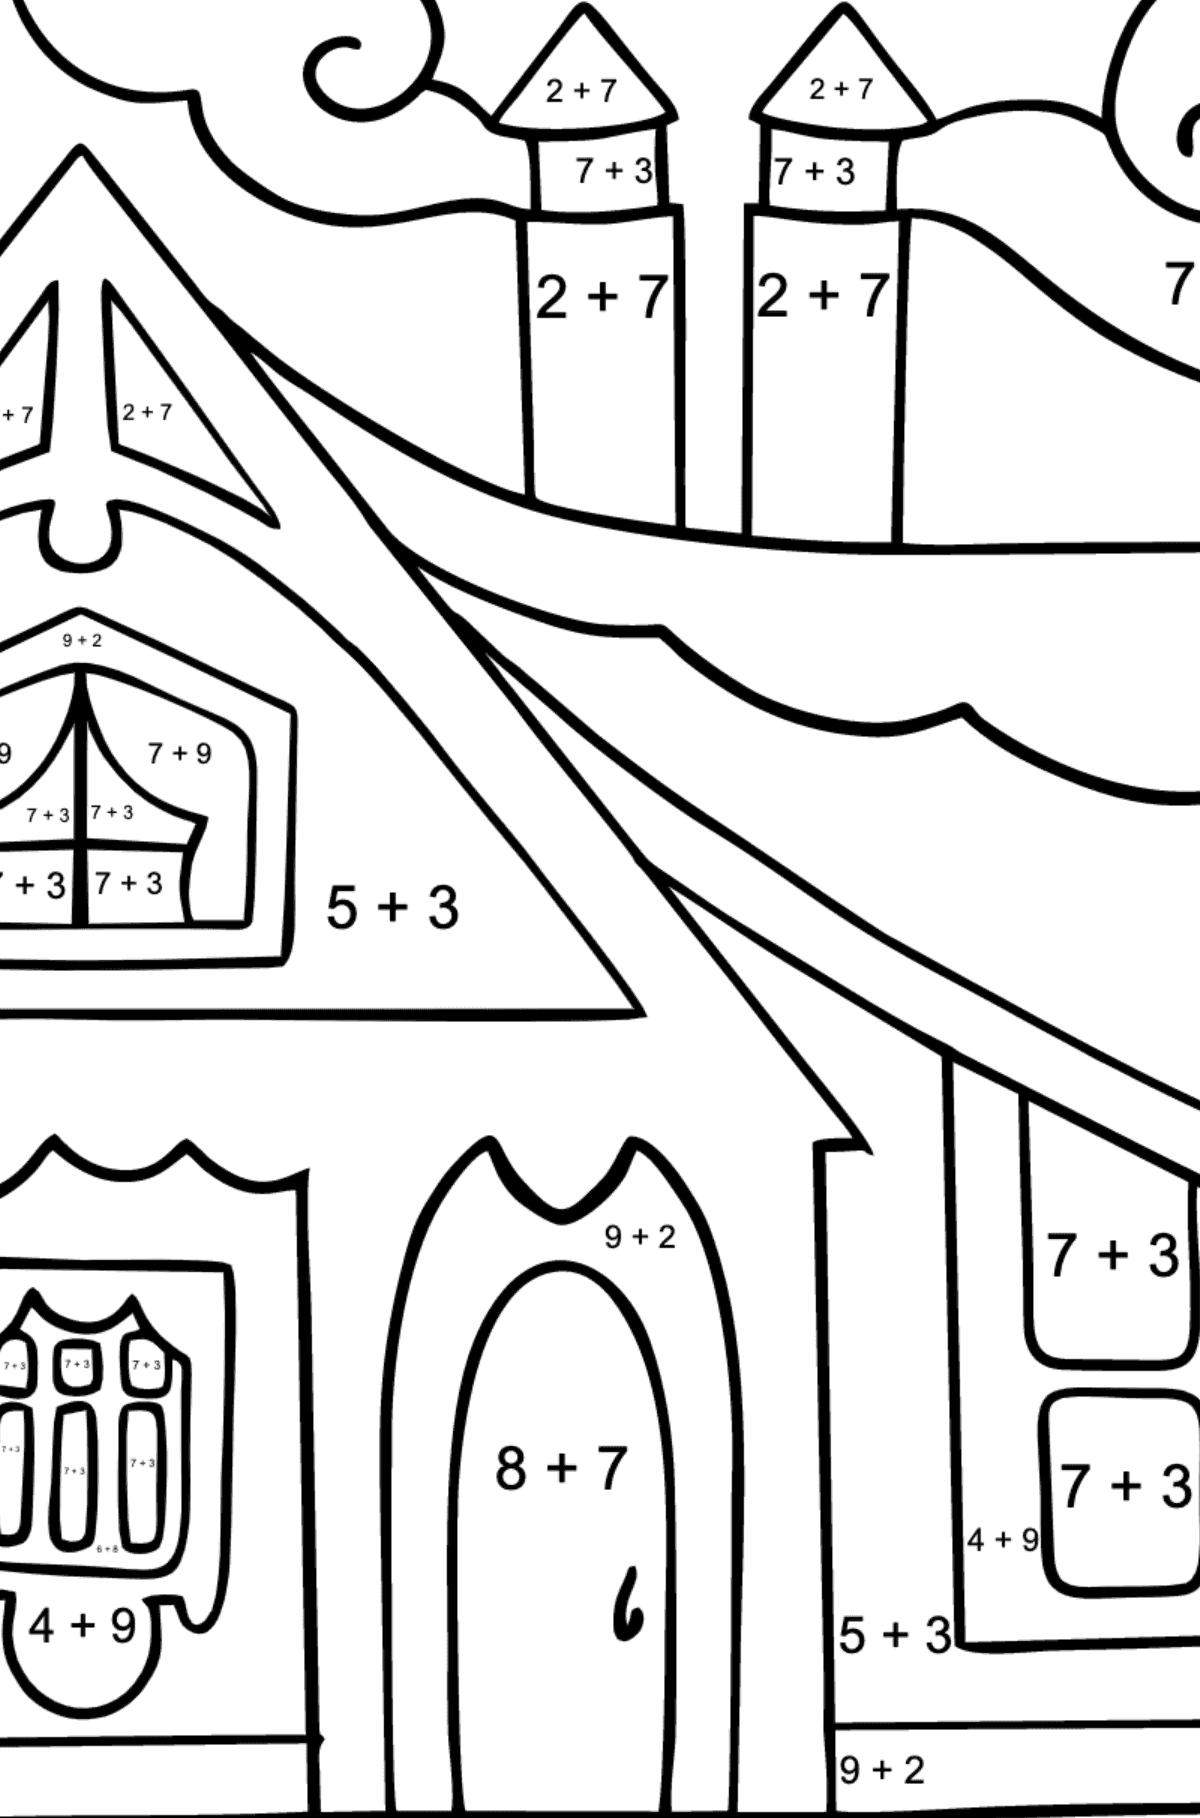 Complex Coloring Page - A Tiny House for Children  - Color by Number Addition